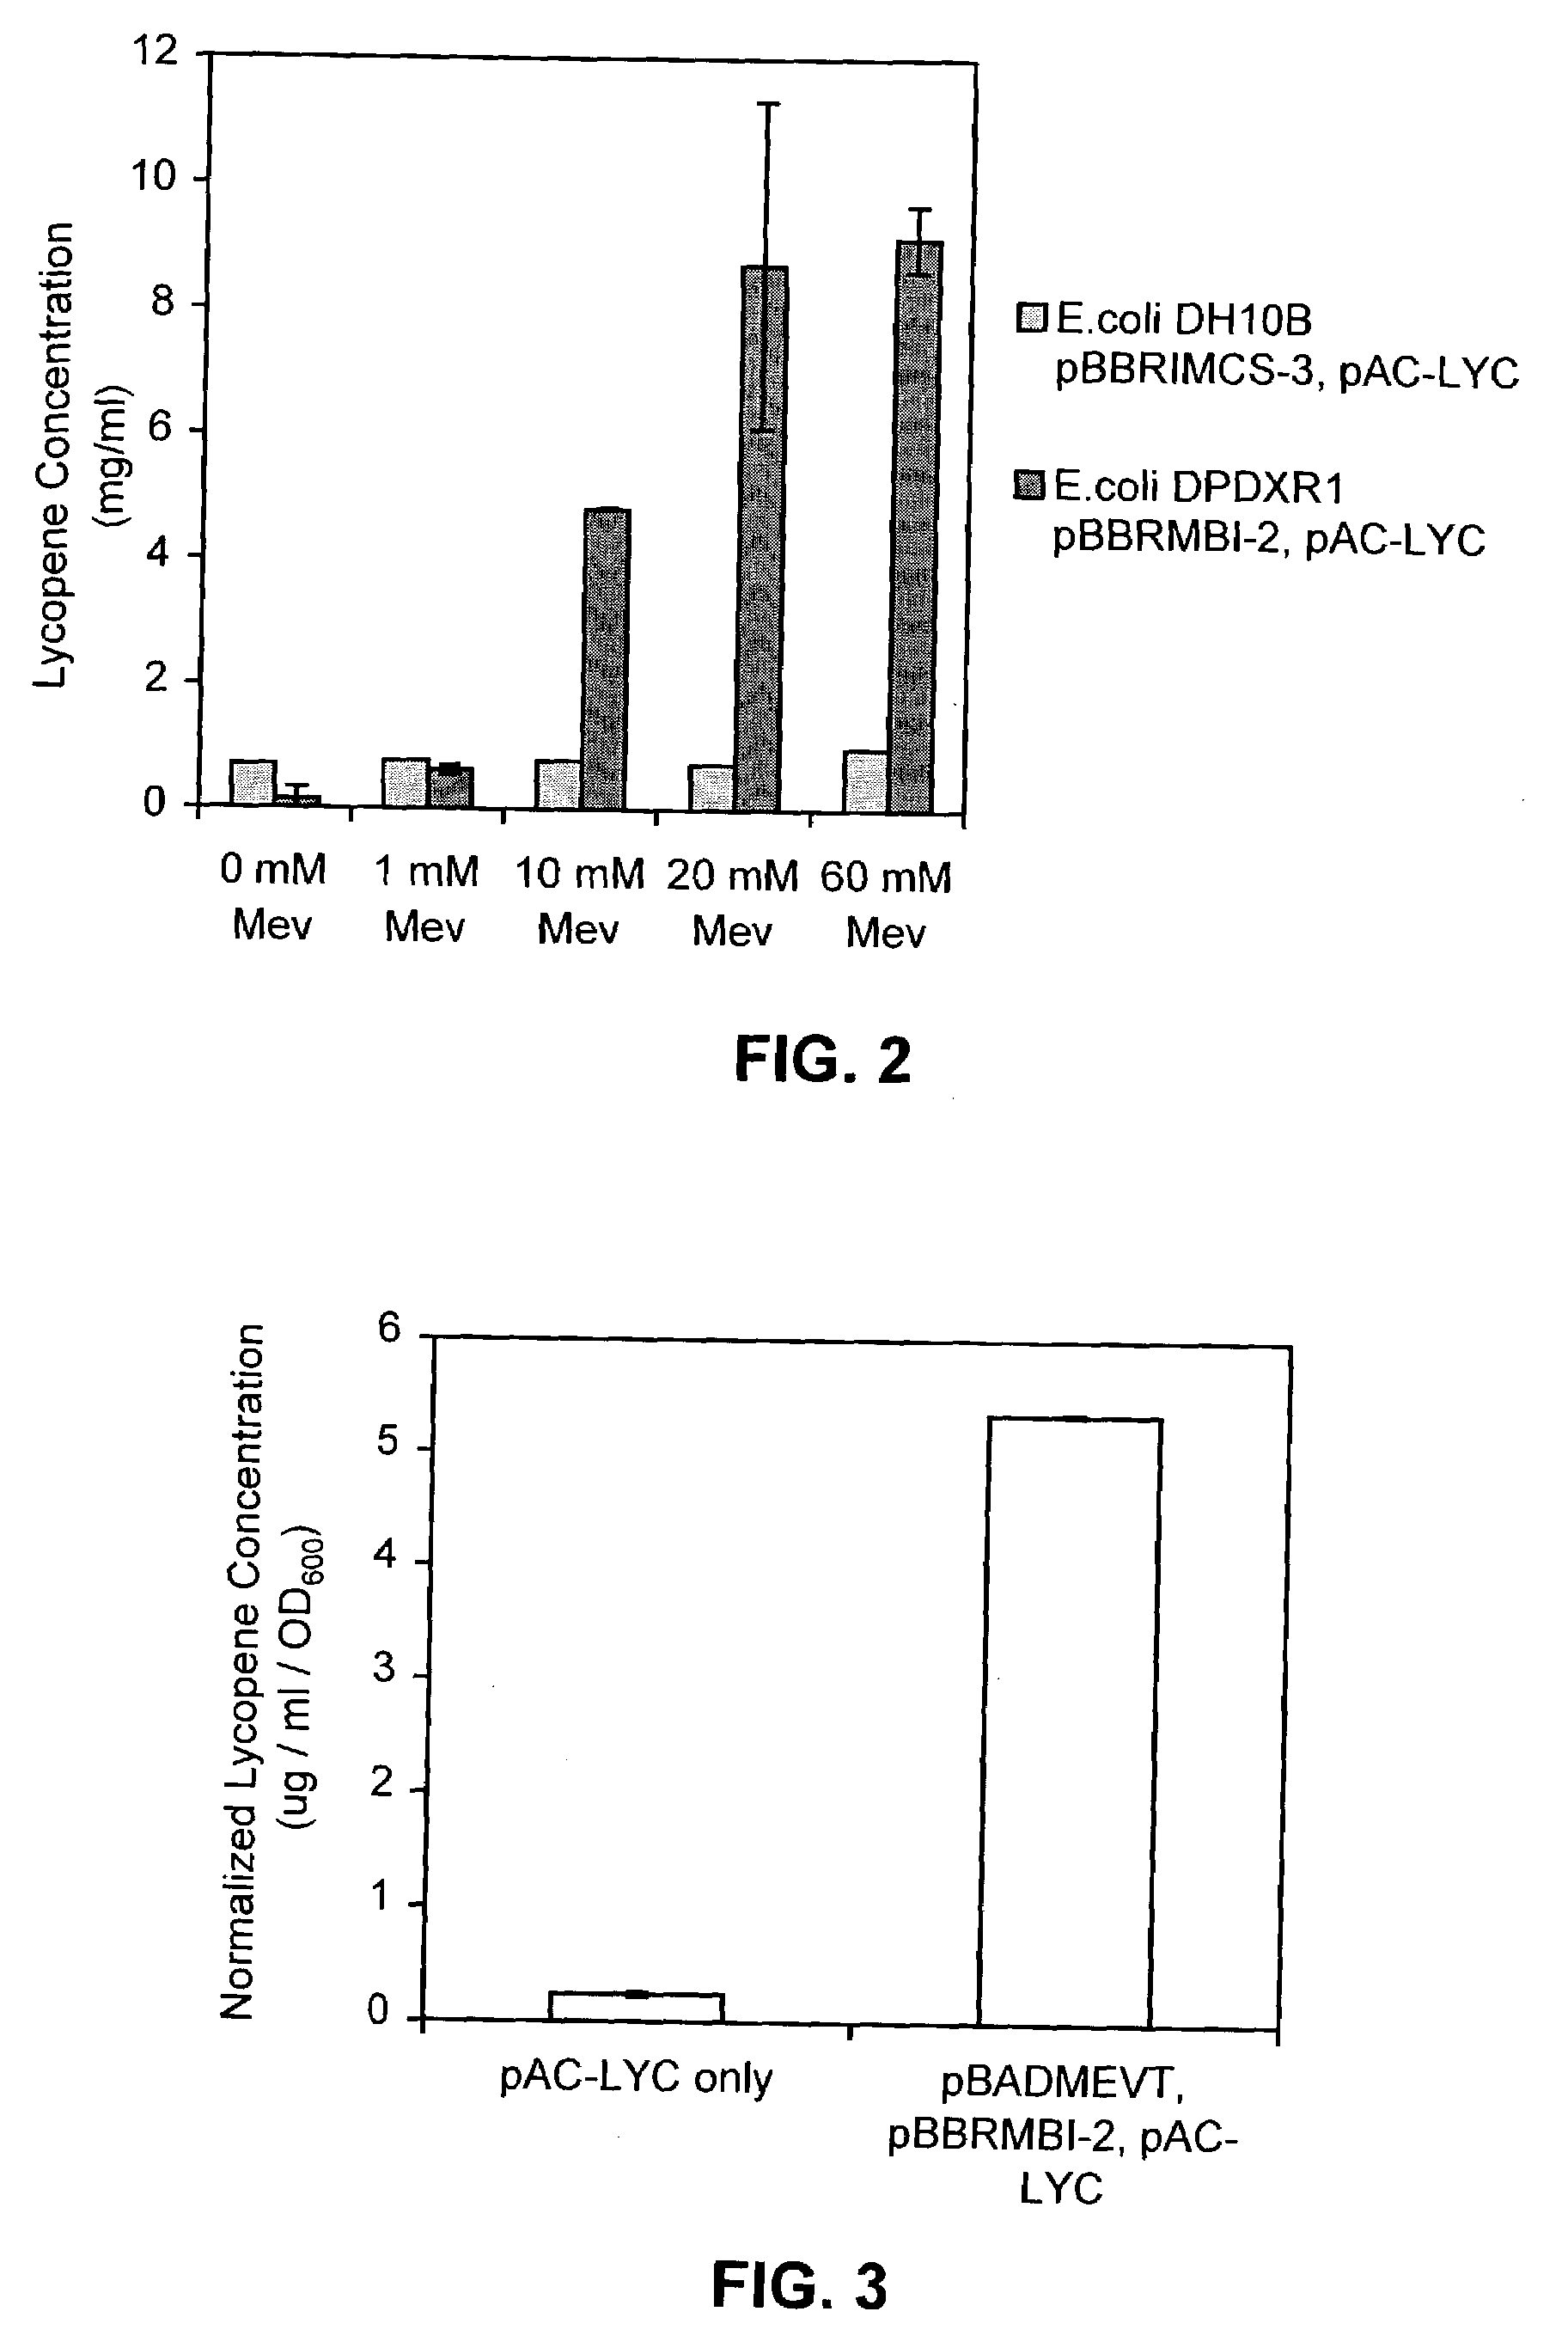 Patente US Biosynthesis of amorpha 4 11 ne Google Patentes